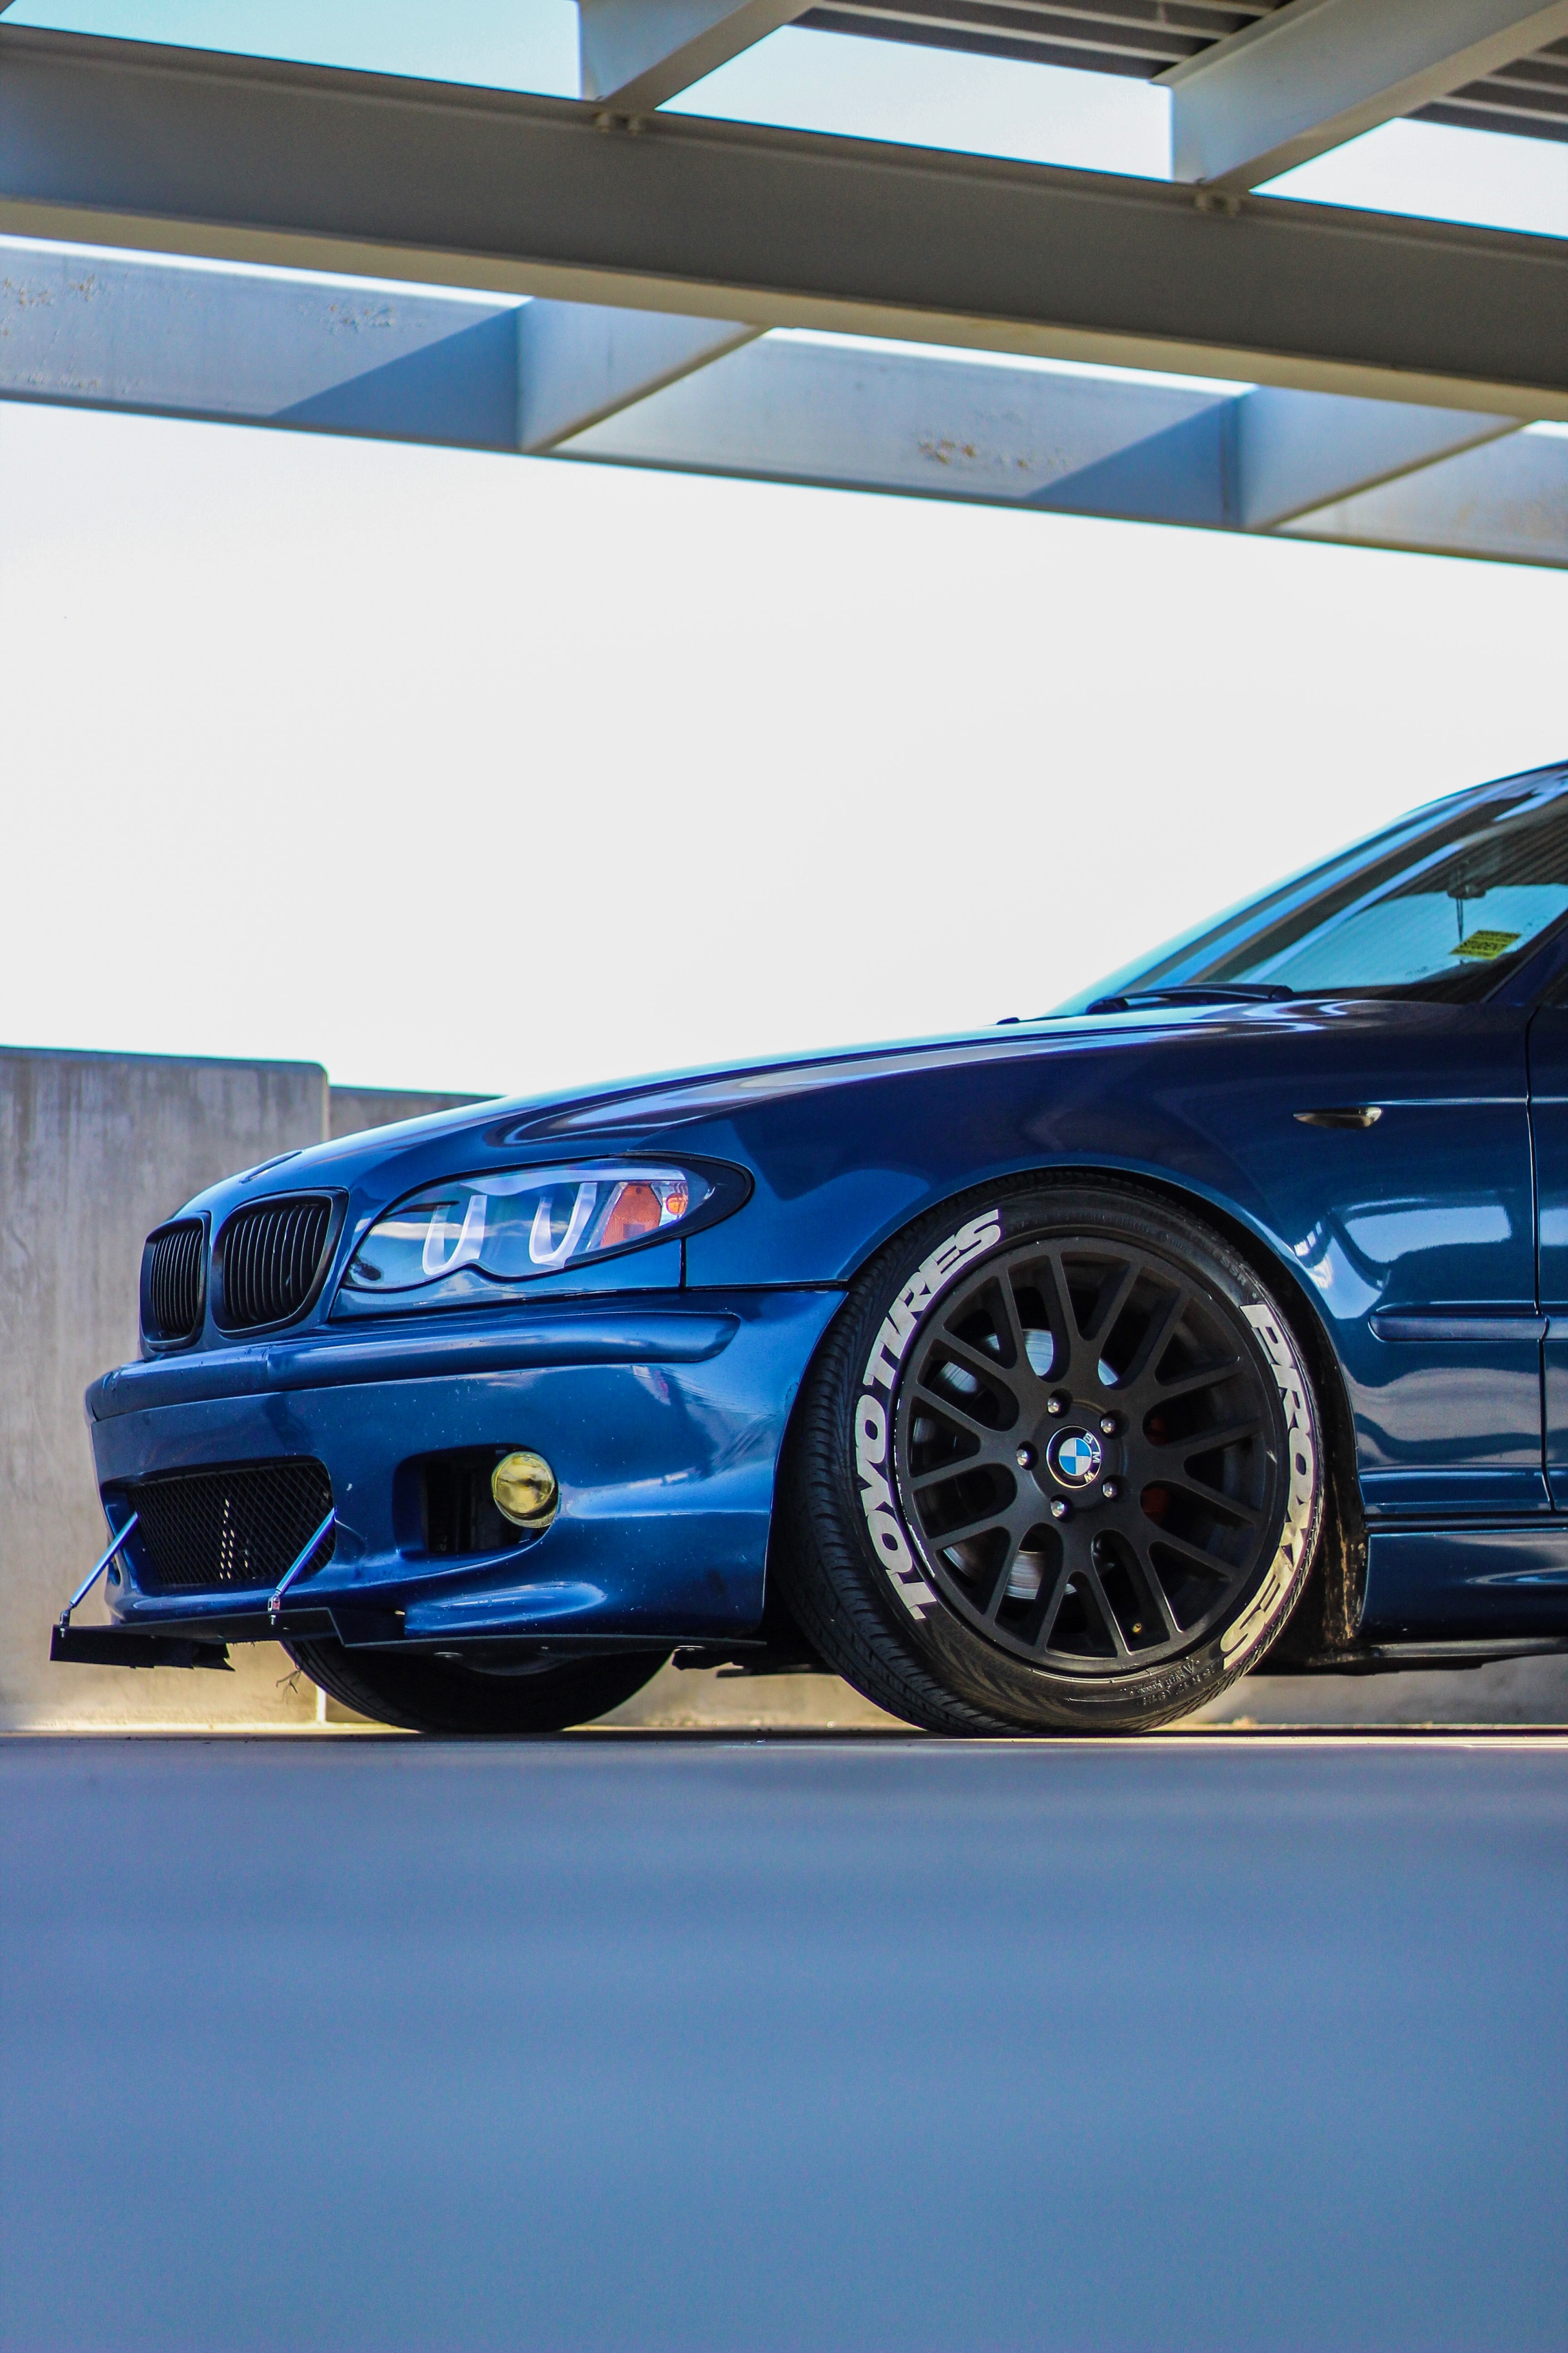 Bmw E46 Is Lippe Spoilerlippe Splitter M3 Lippe